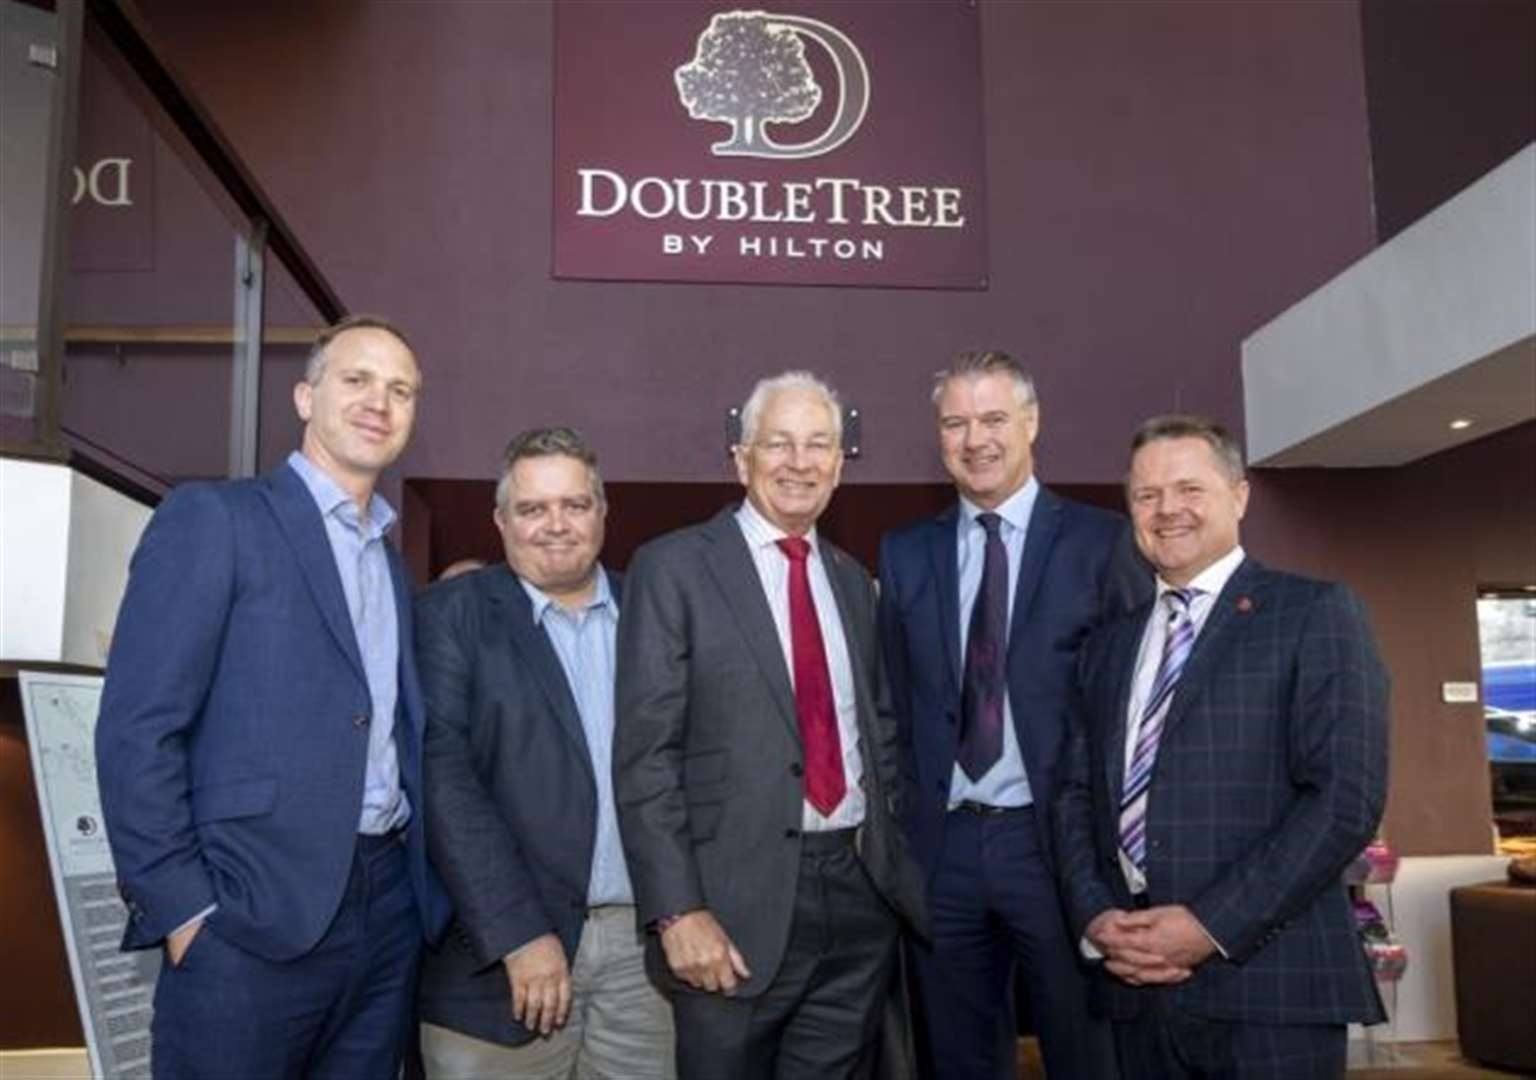 David Gower was guest speaker at Cambridge Sporting Club gathering